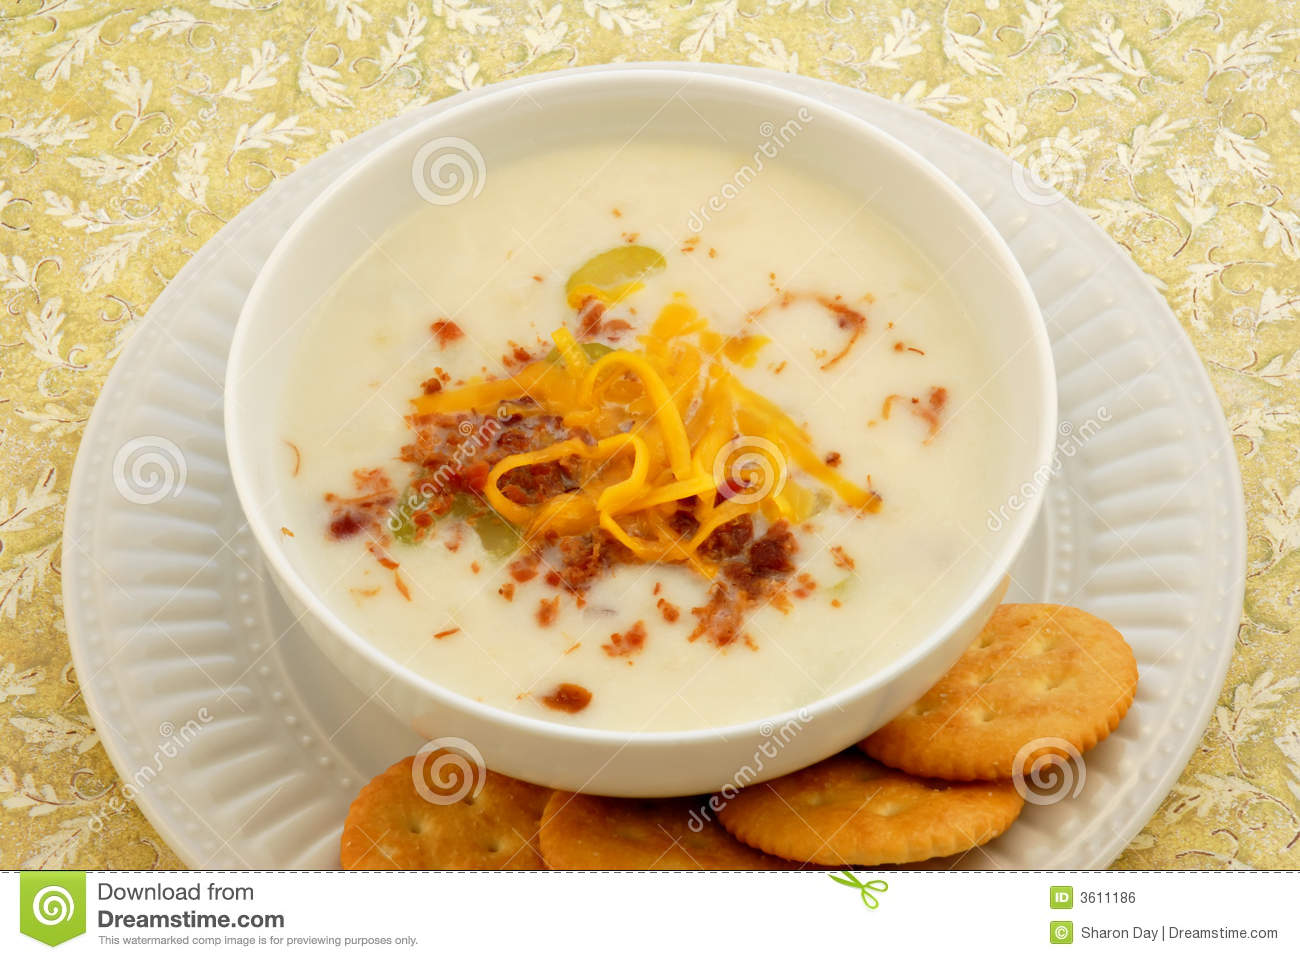 Potato Soup & Crackers